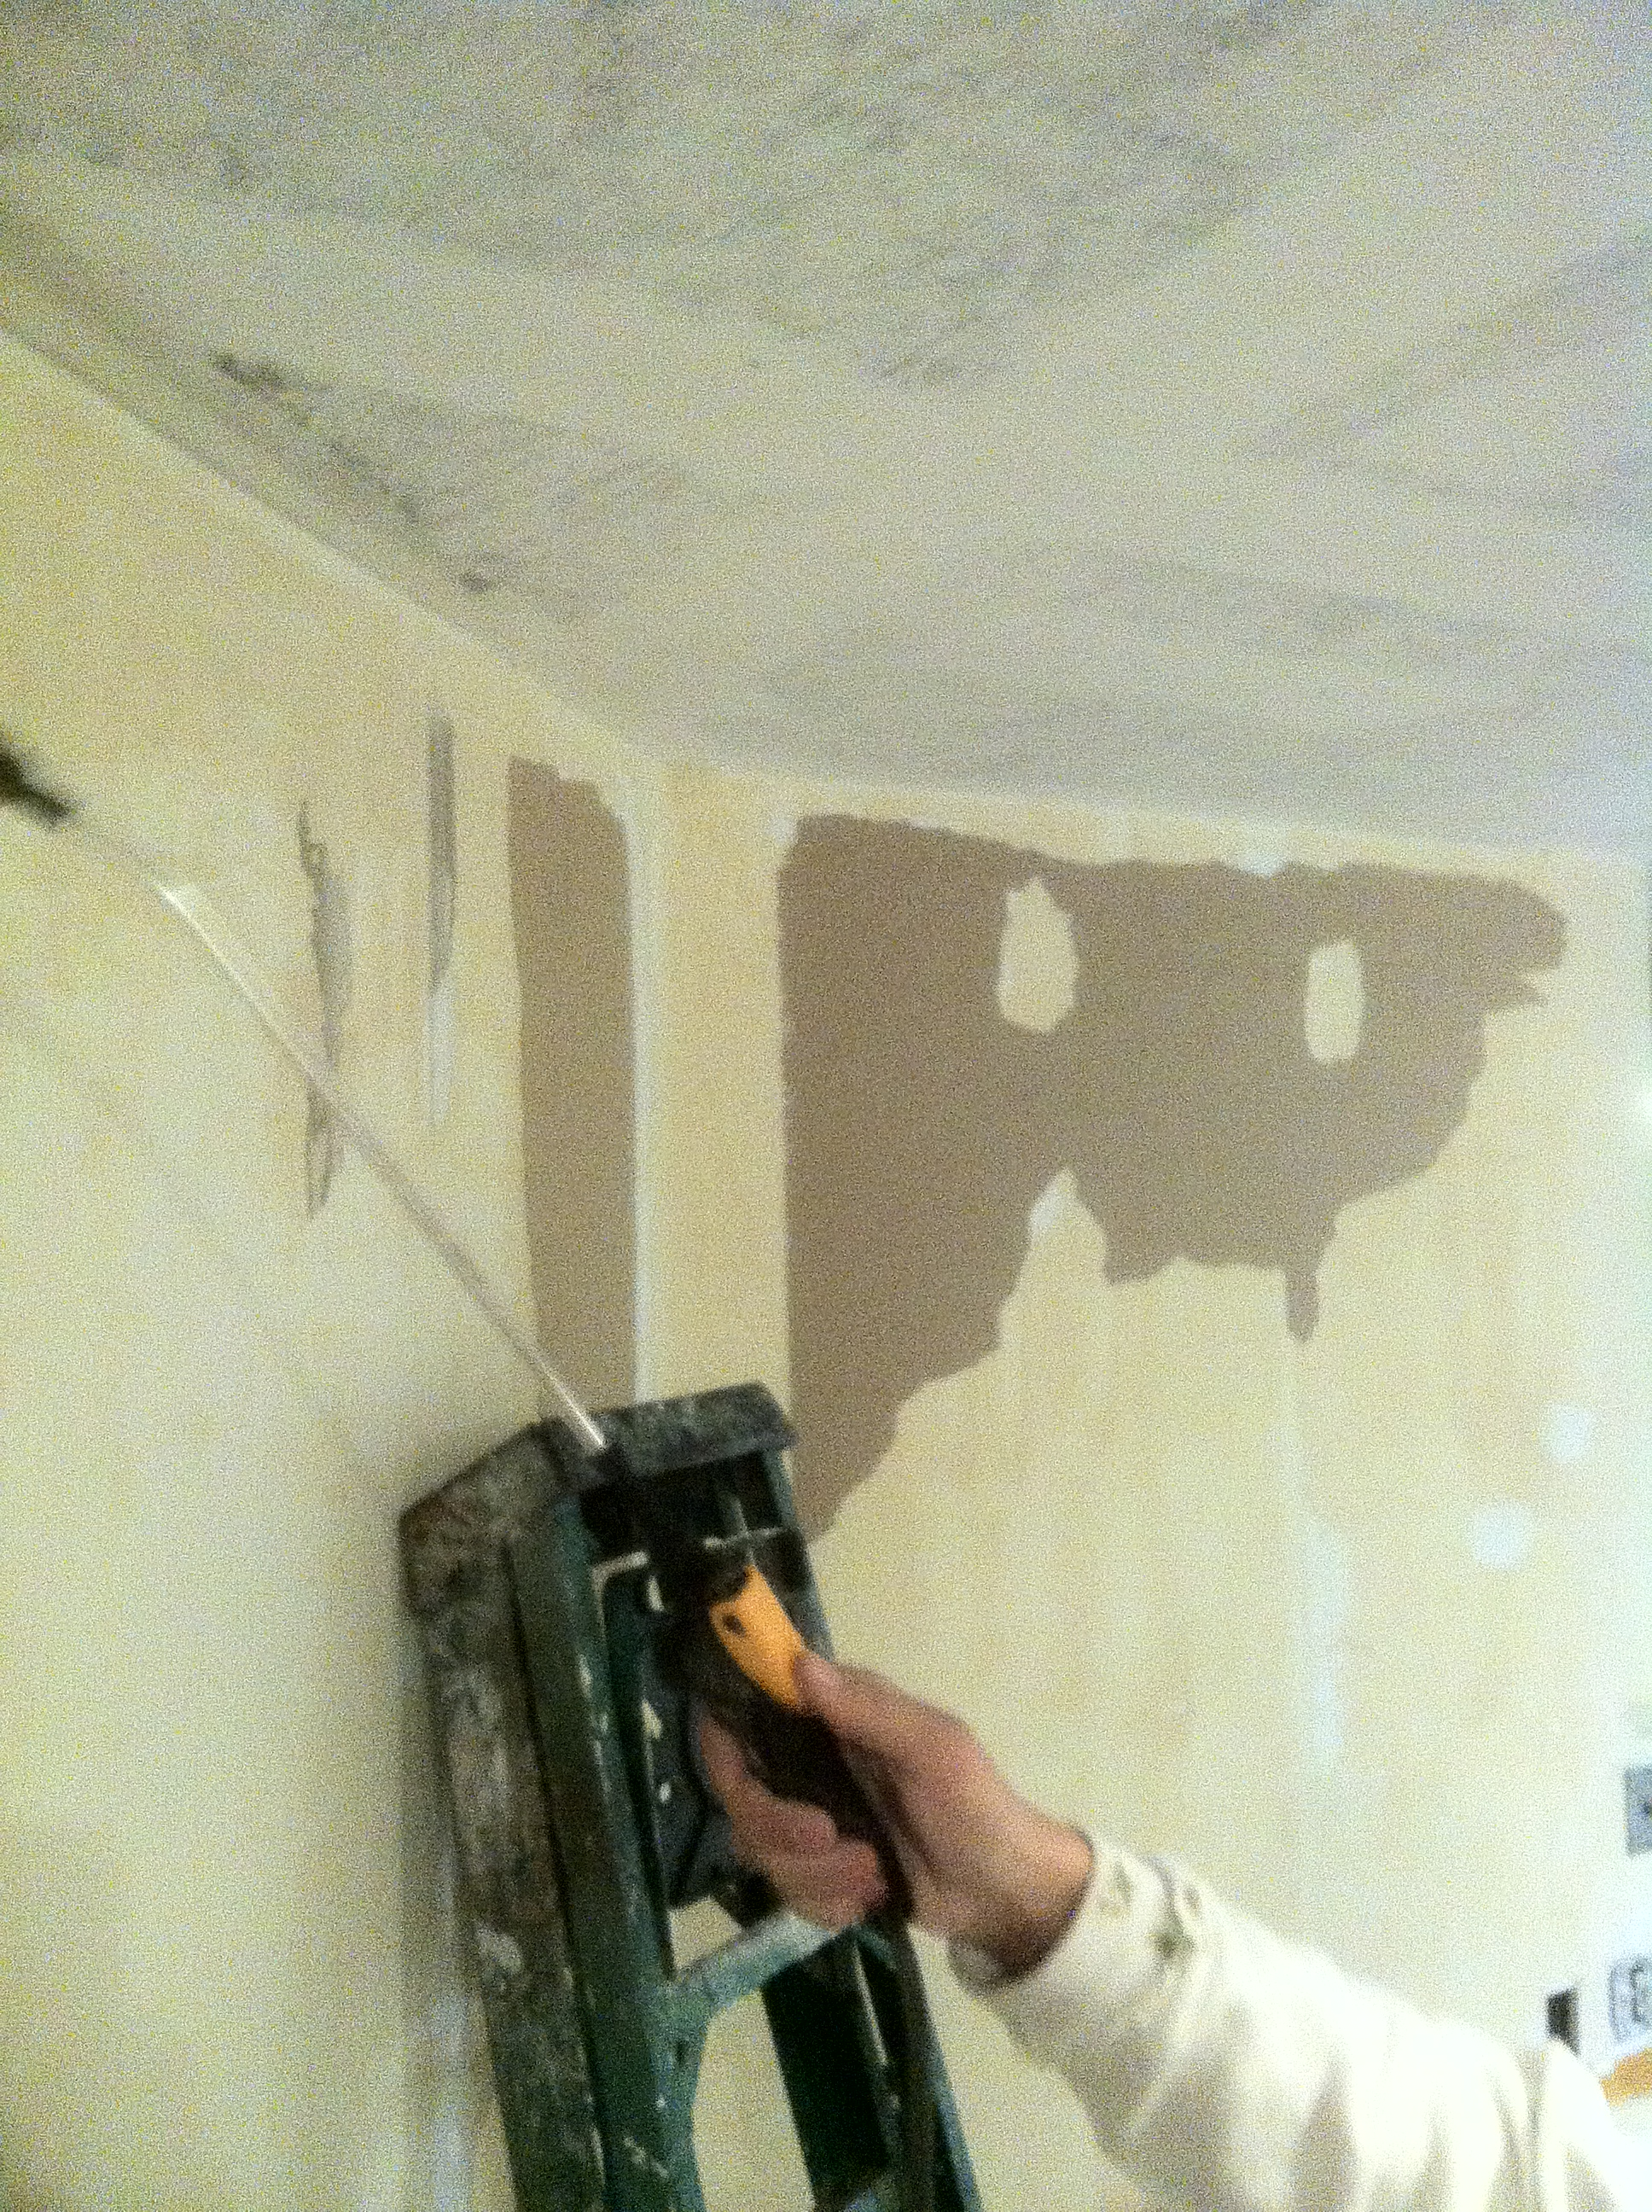 Wall Paper Removal professional wallpaper removal in south jersey - cherry hill painting